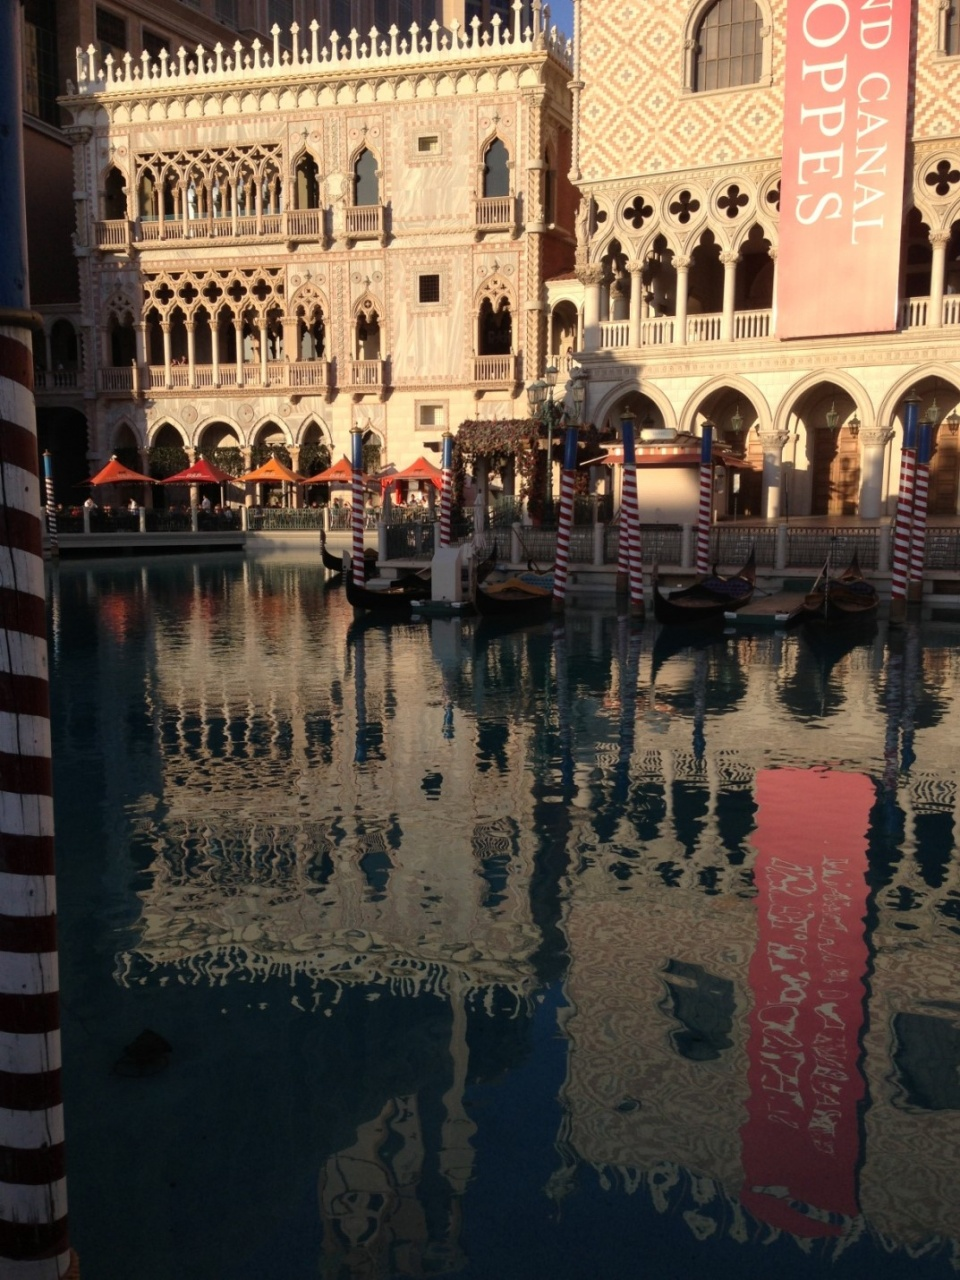 Just outside the Venetian